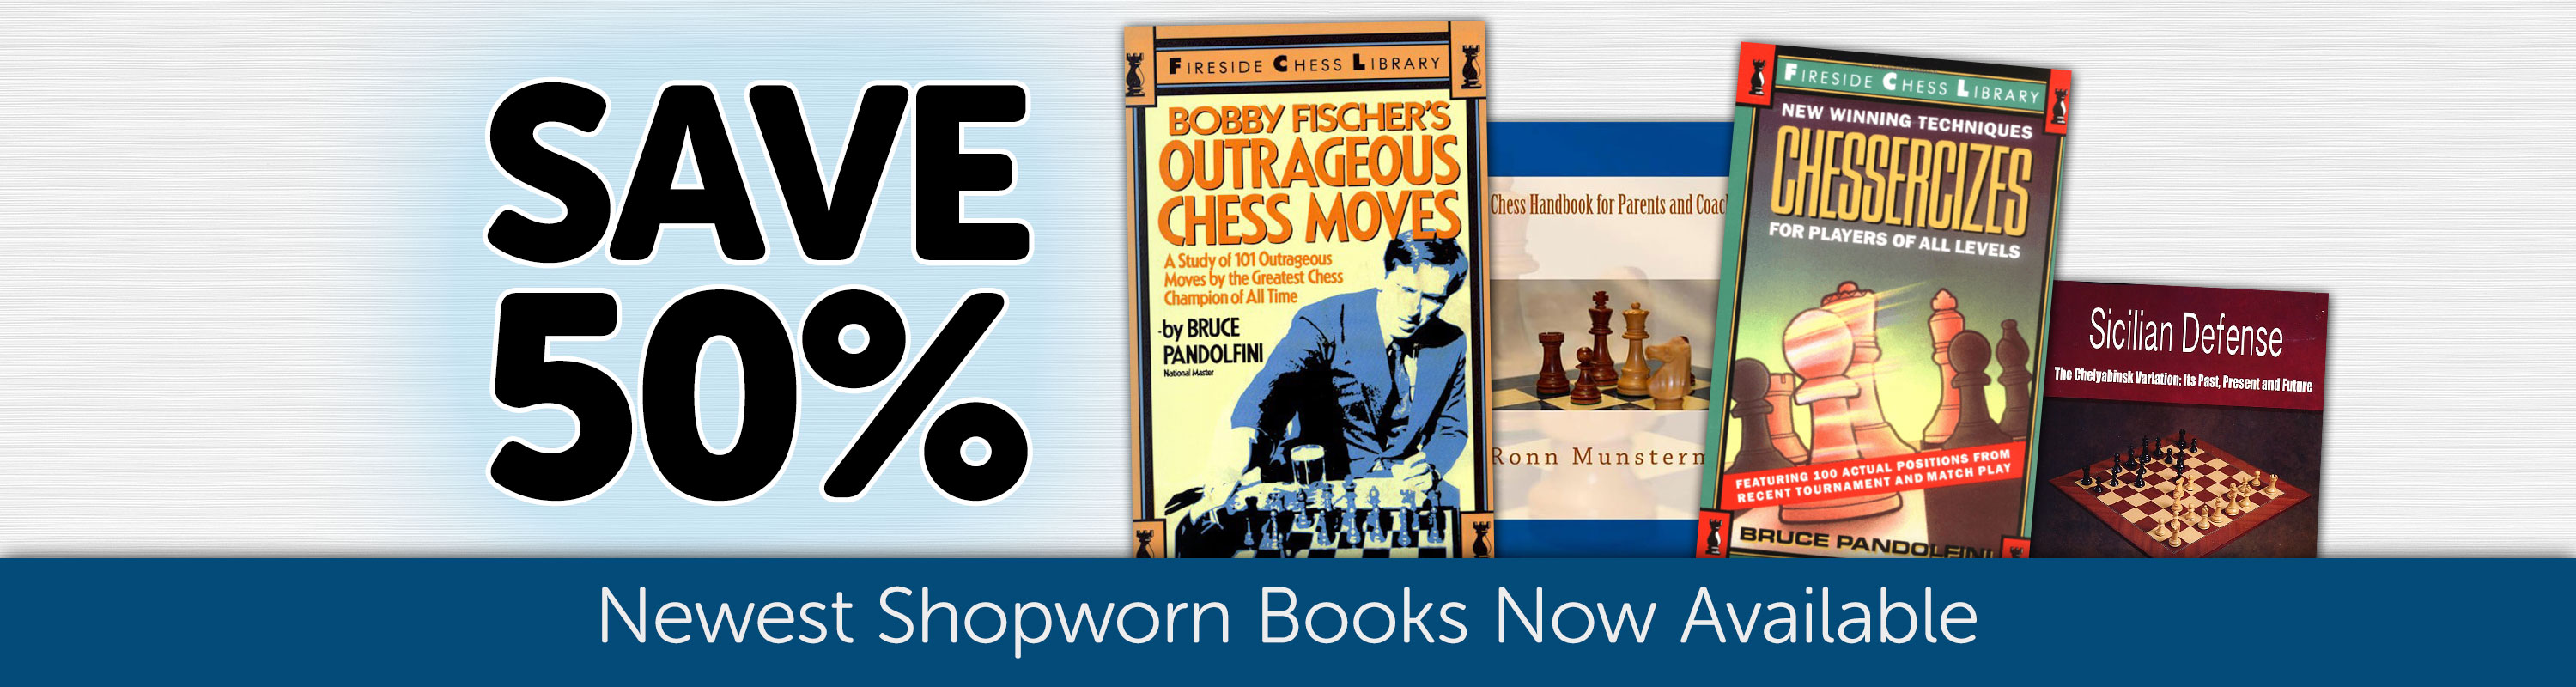 New Shopworn Books - Save 50%